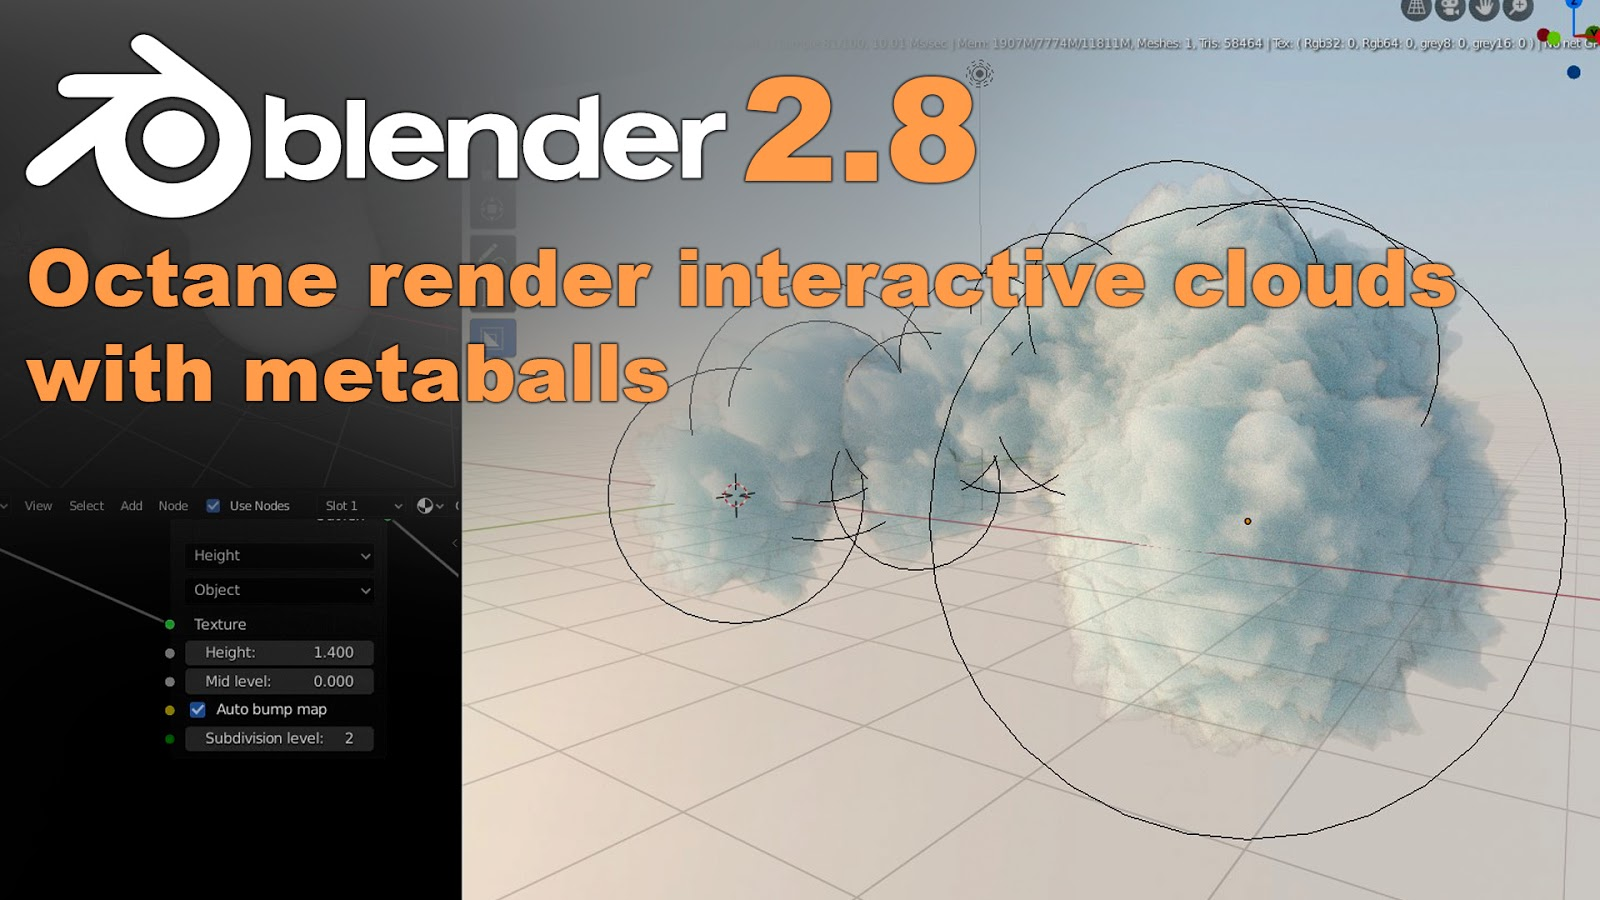 blender28_octane_render_interactive_clouds_youtube.jpg